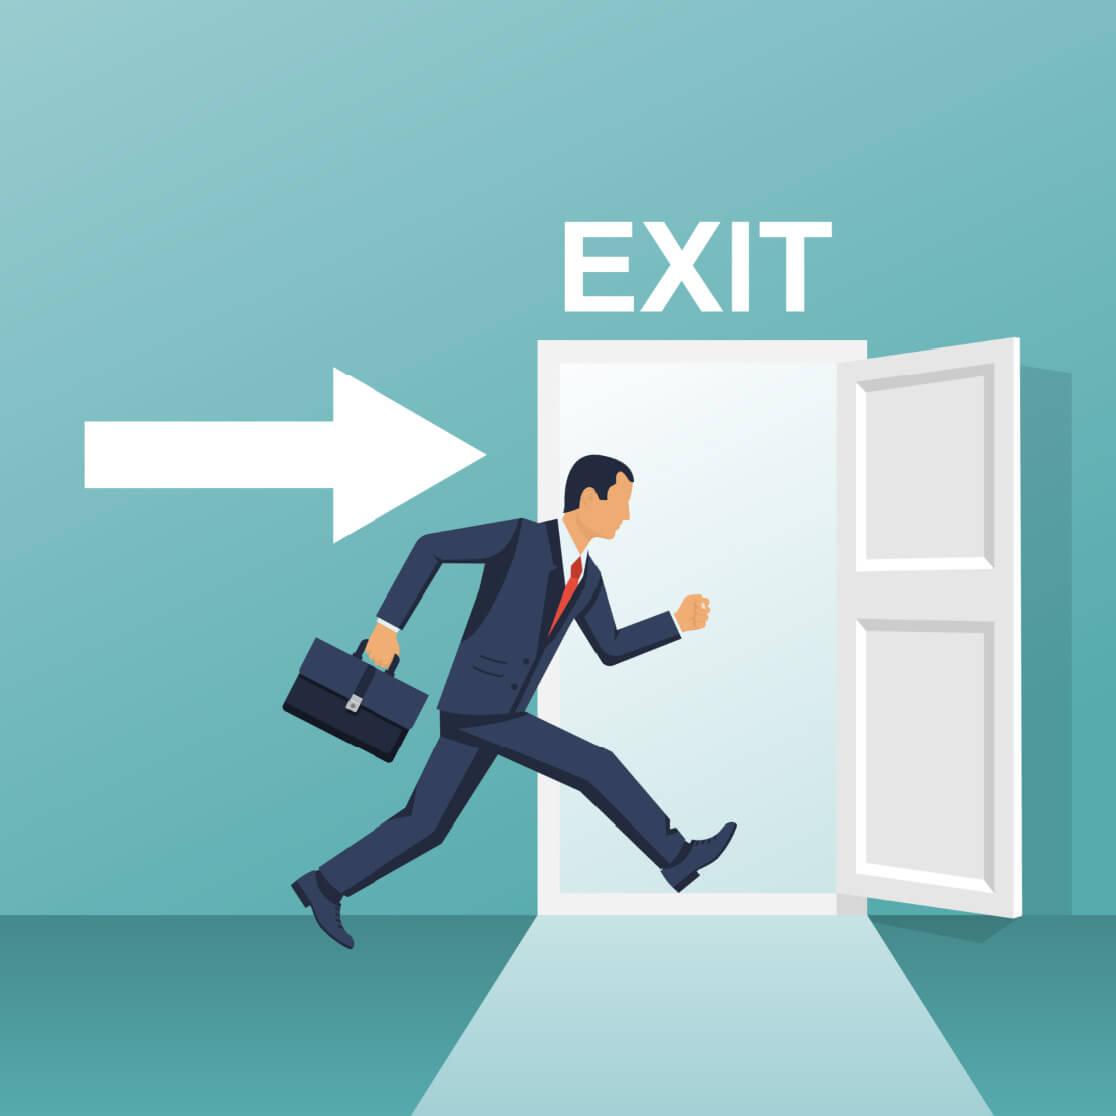 exit survey employee quitting